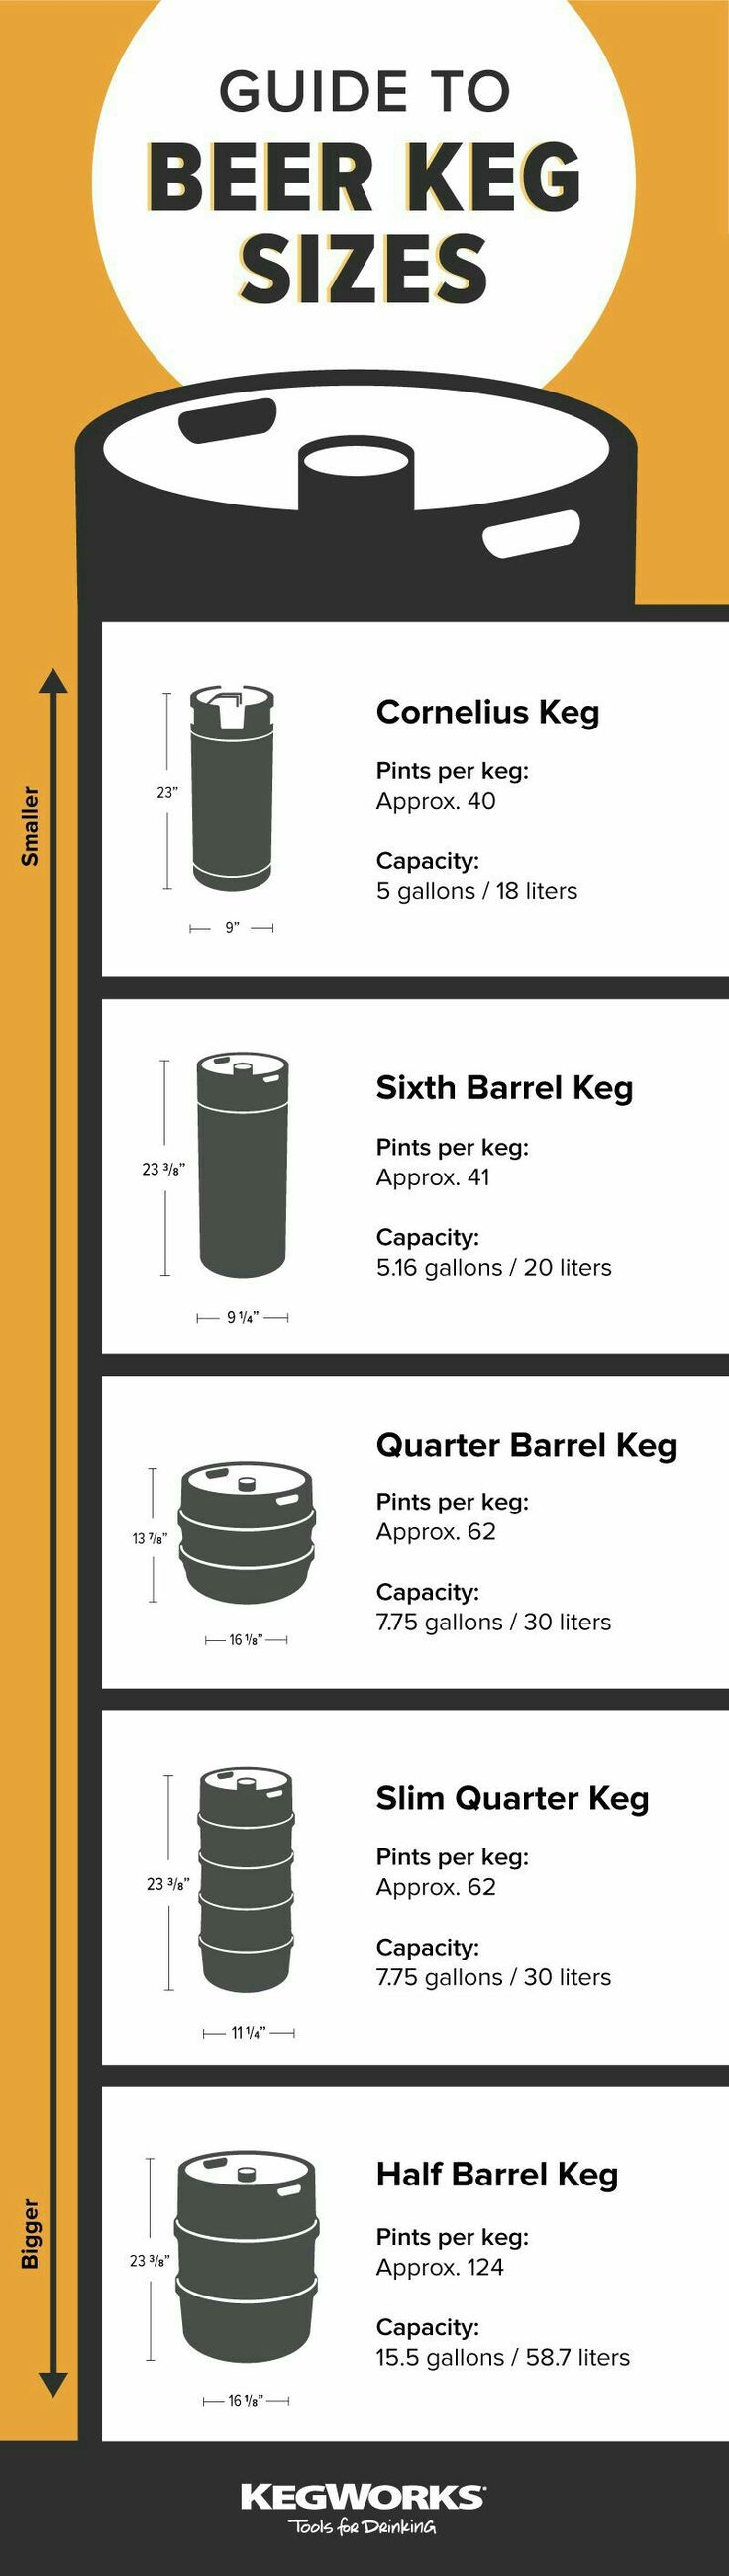 Beer keg sizes for when it matters